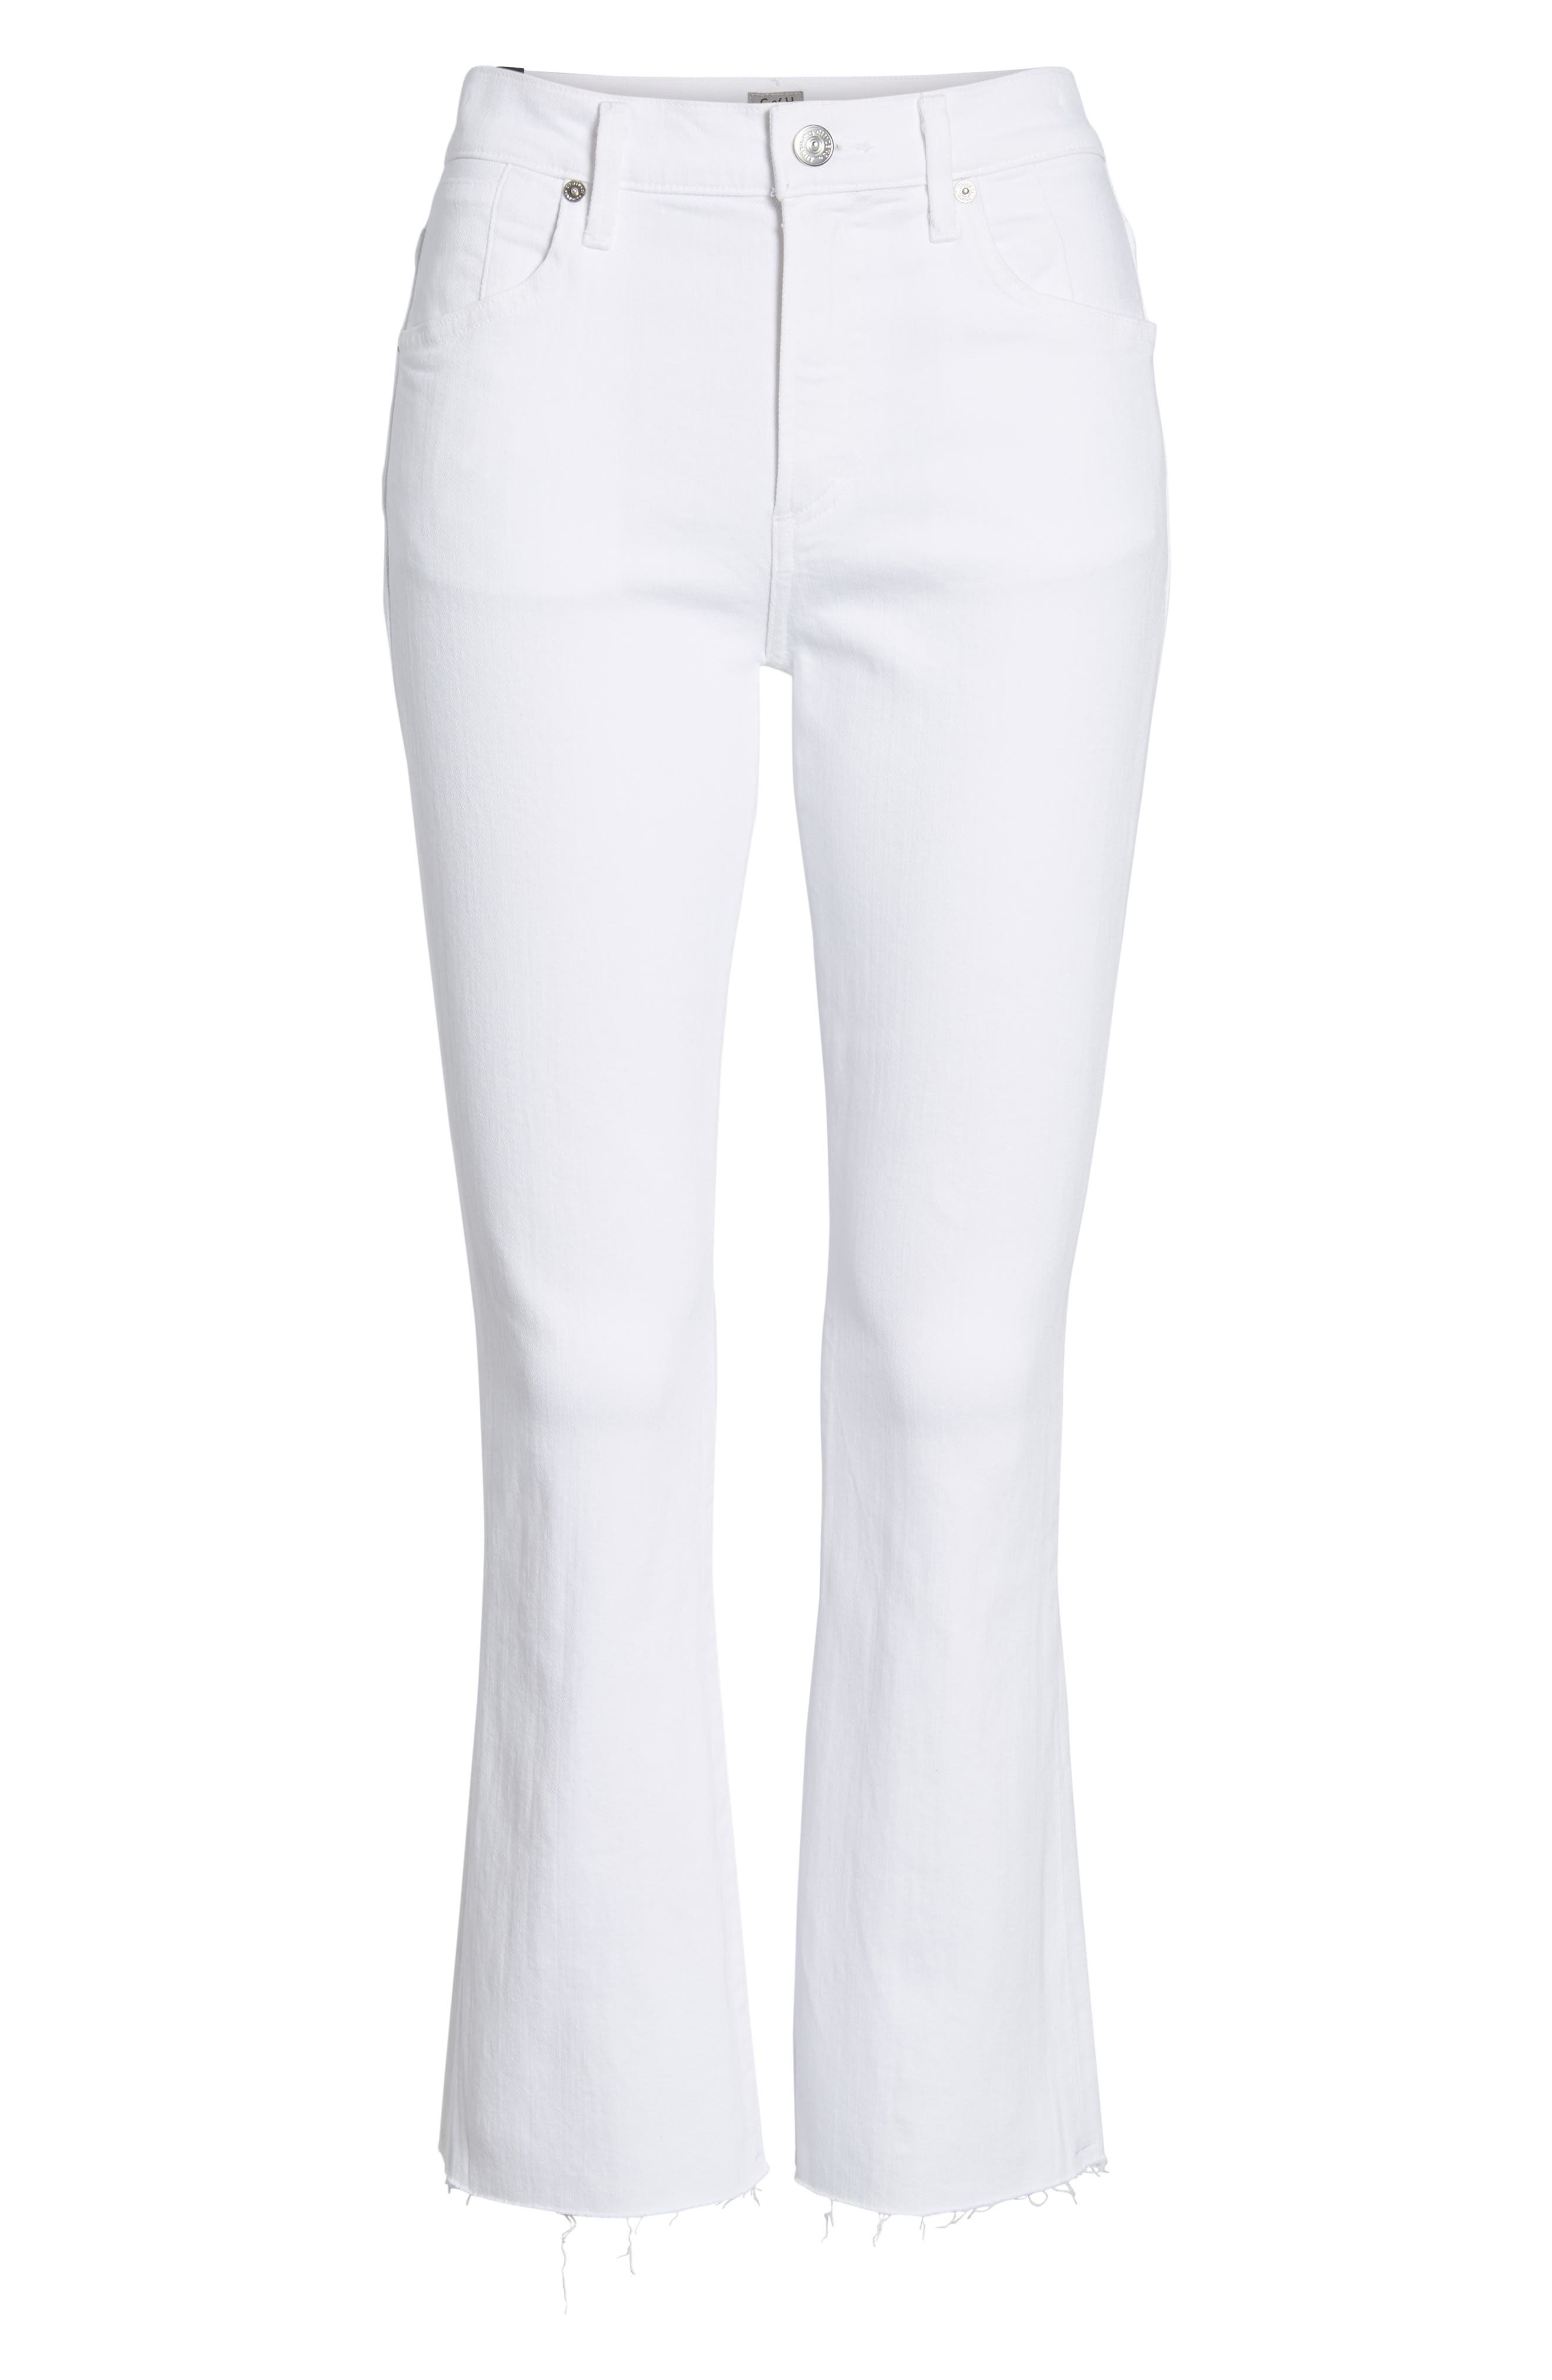 CITIZENS OF HUMANITY,                             Fleetwood Crop Straight Leg Jeans,                             Alternate thumbnail 7, color,                             104